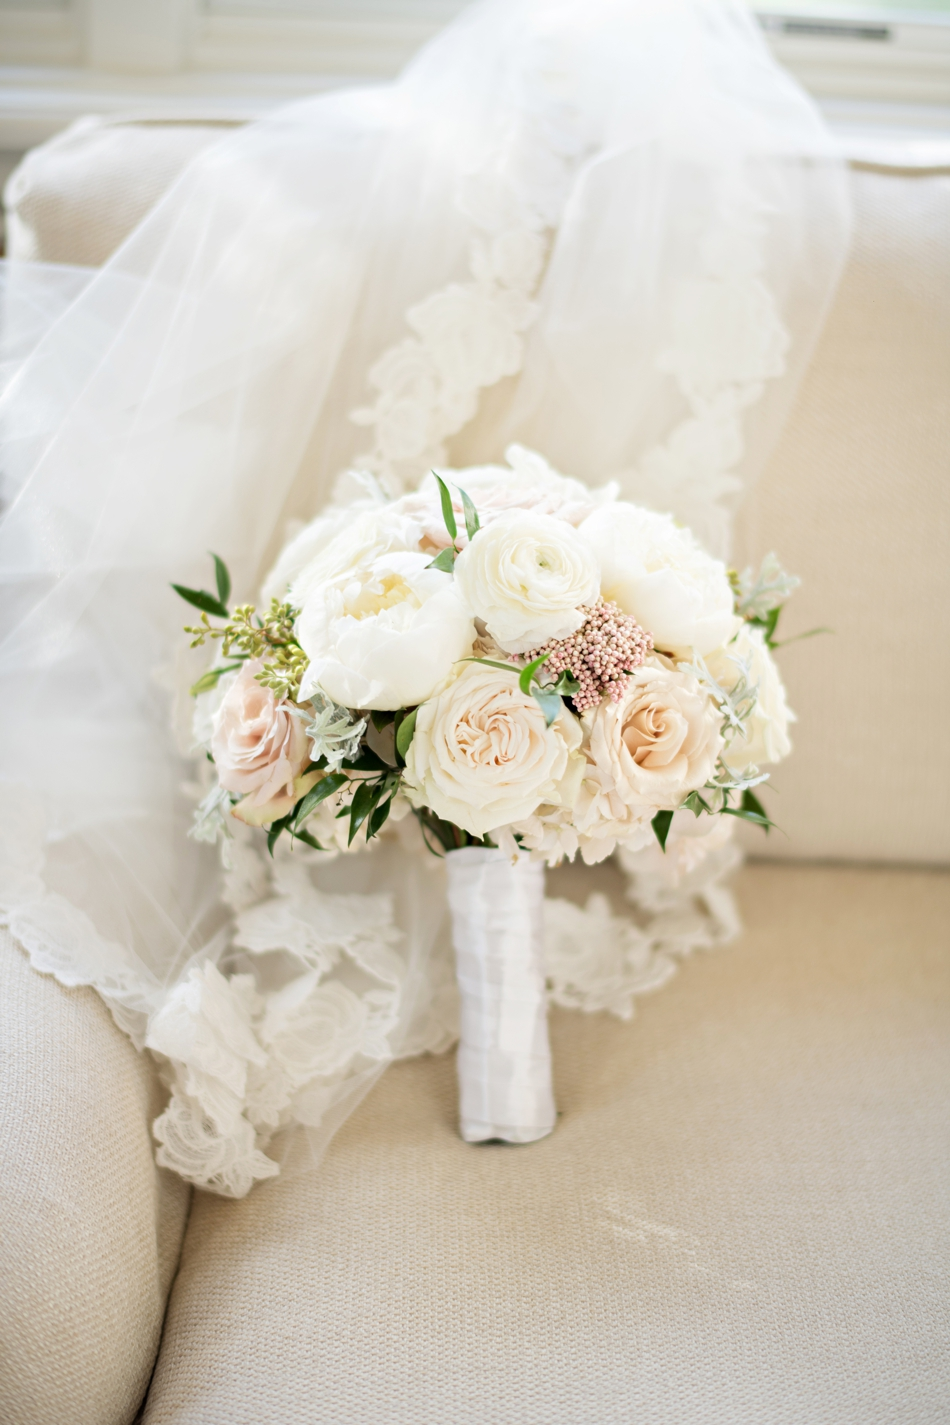 Classic wedding bouquet with white roses